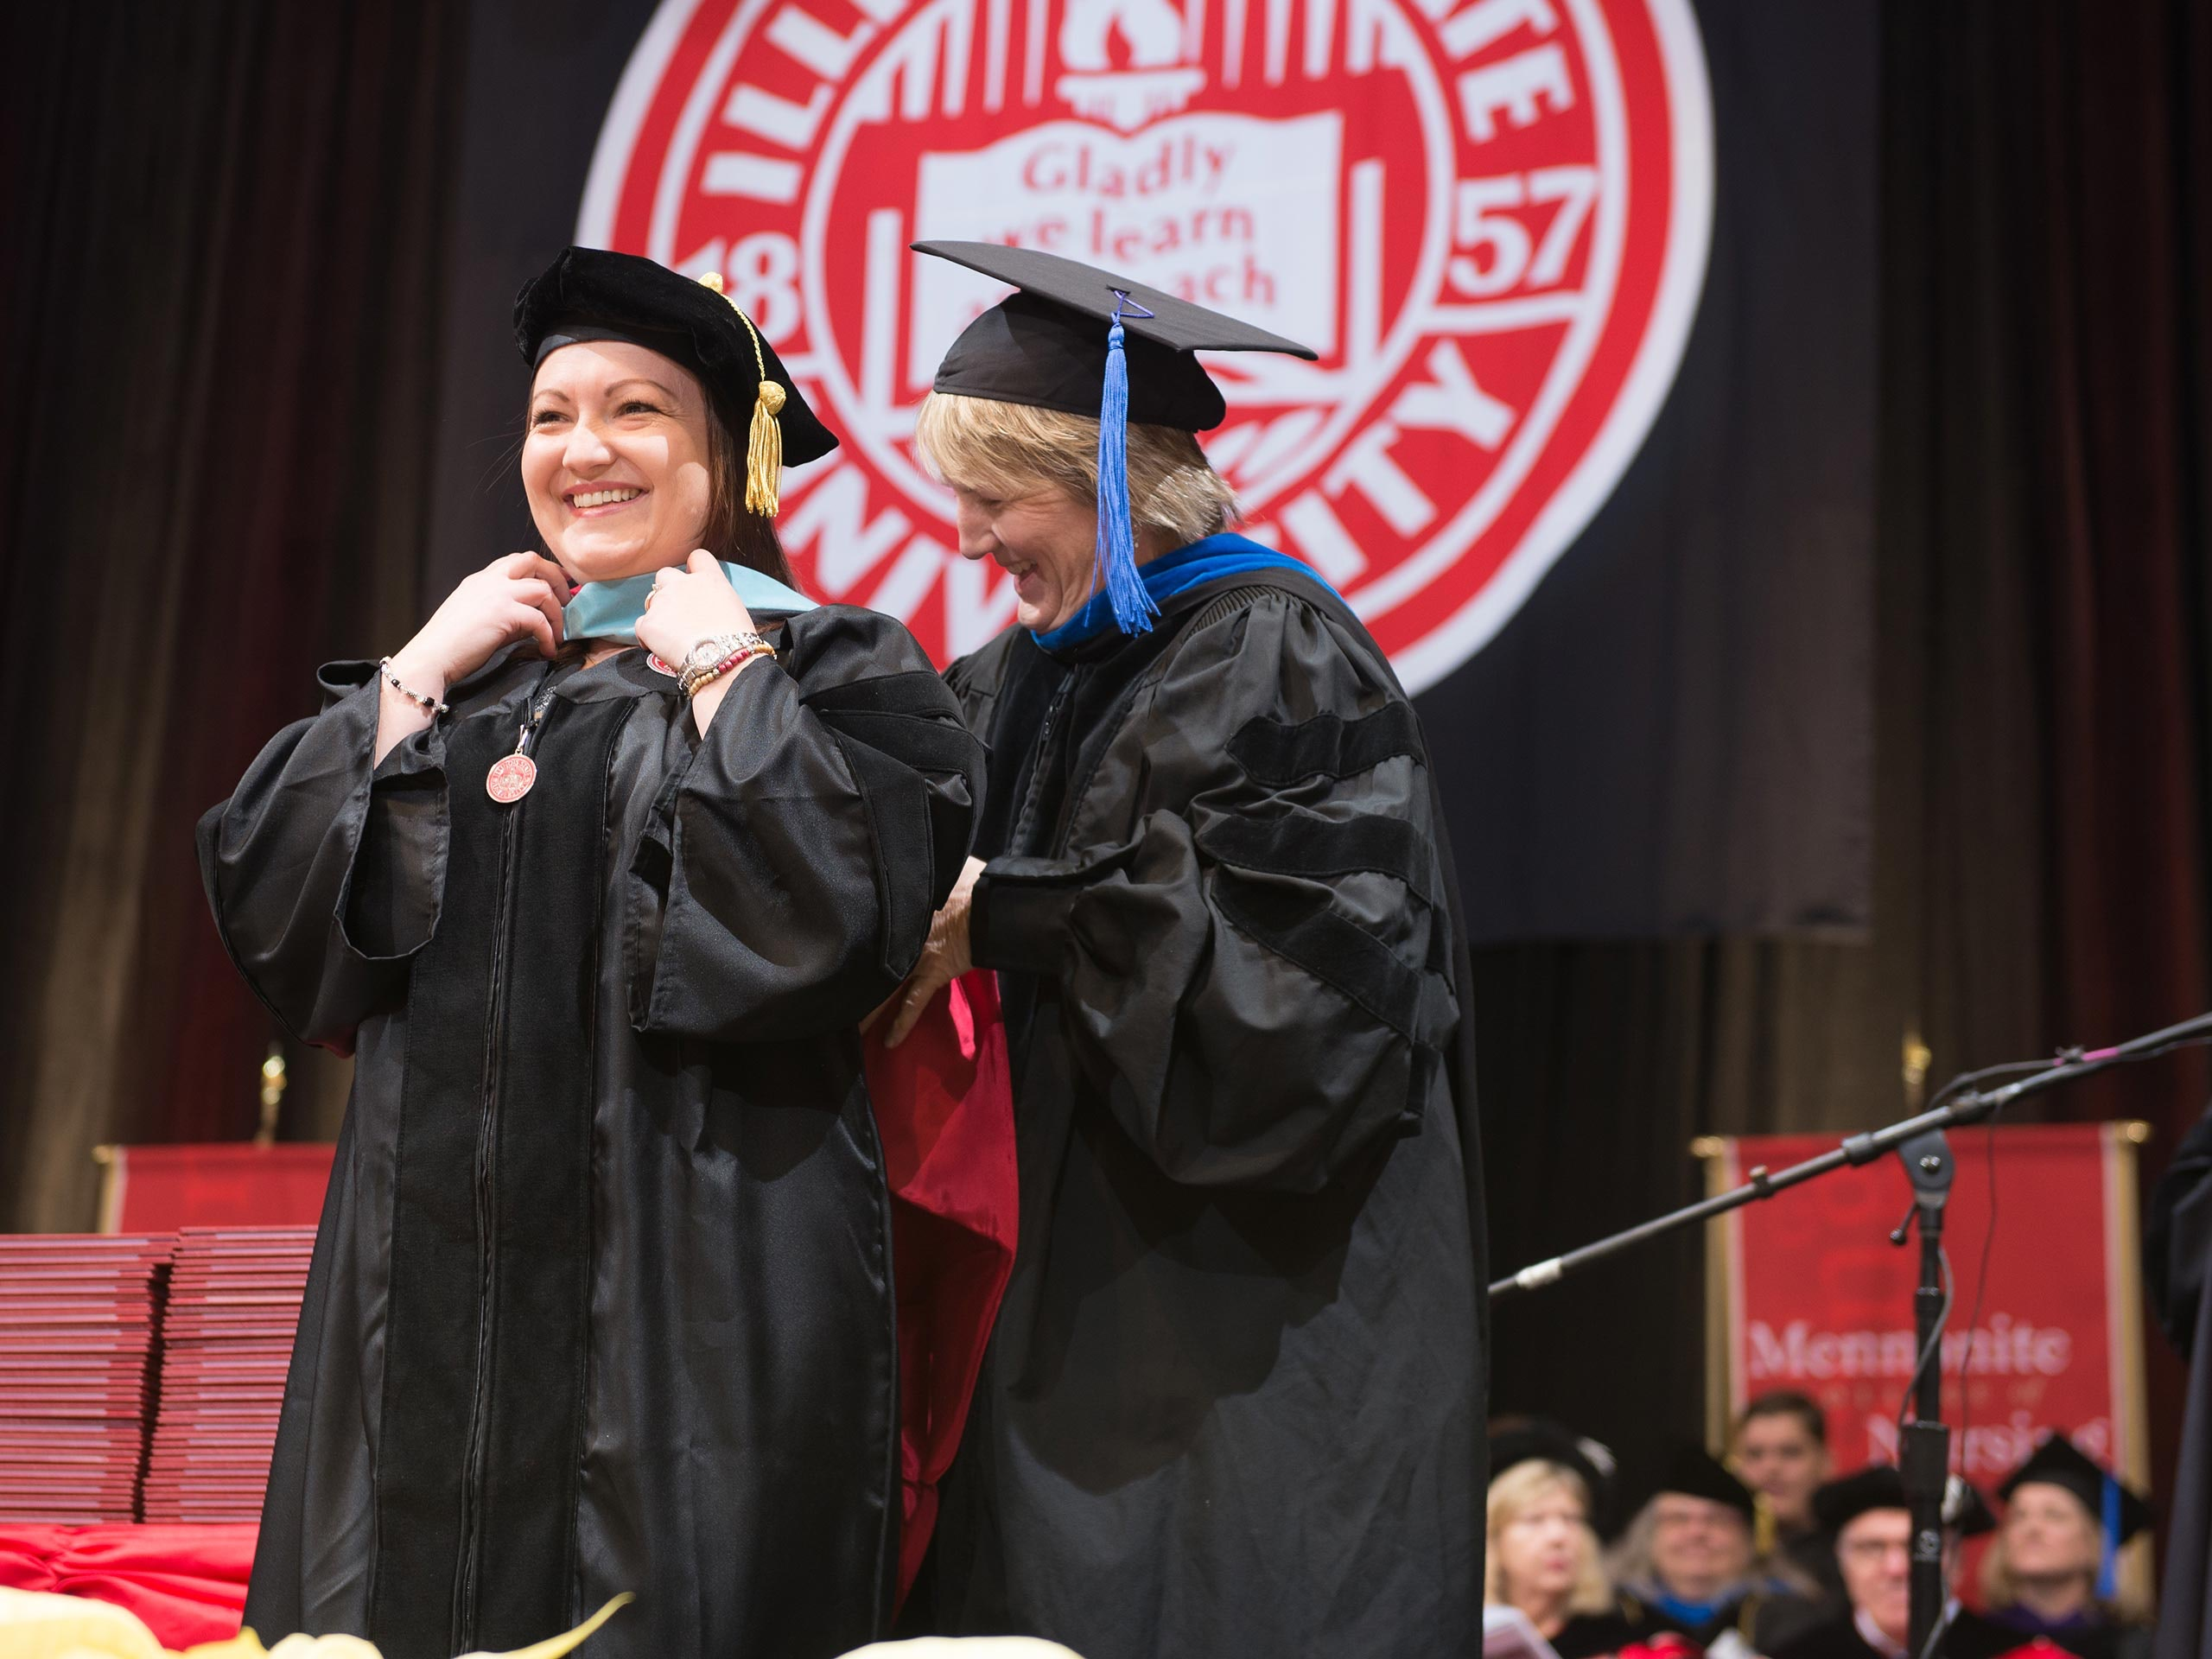 Female student getting graduate hood during commencement ceremony.